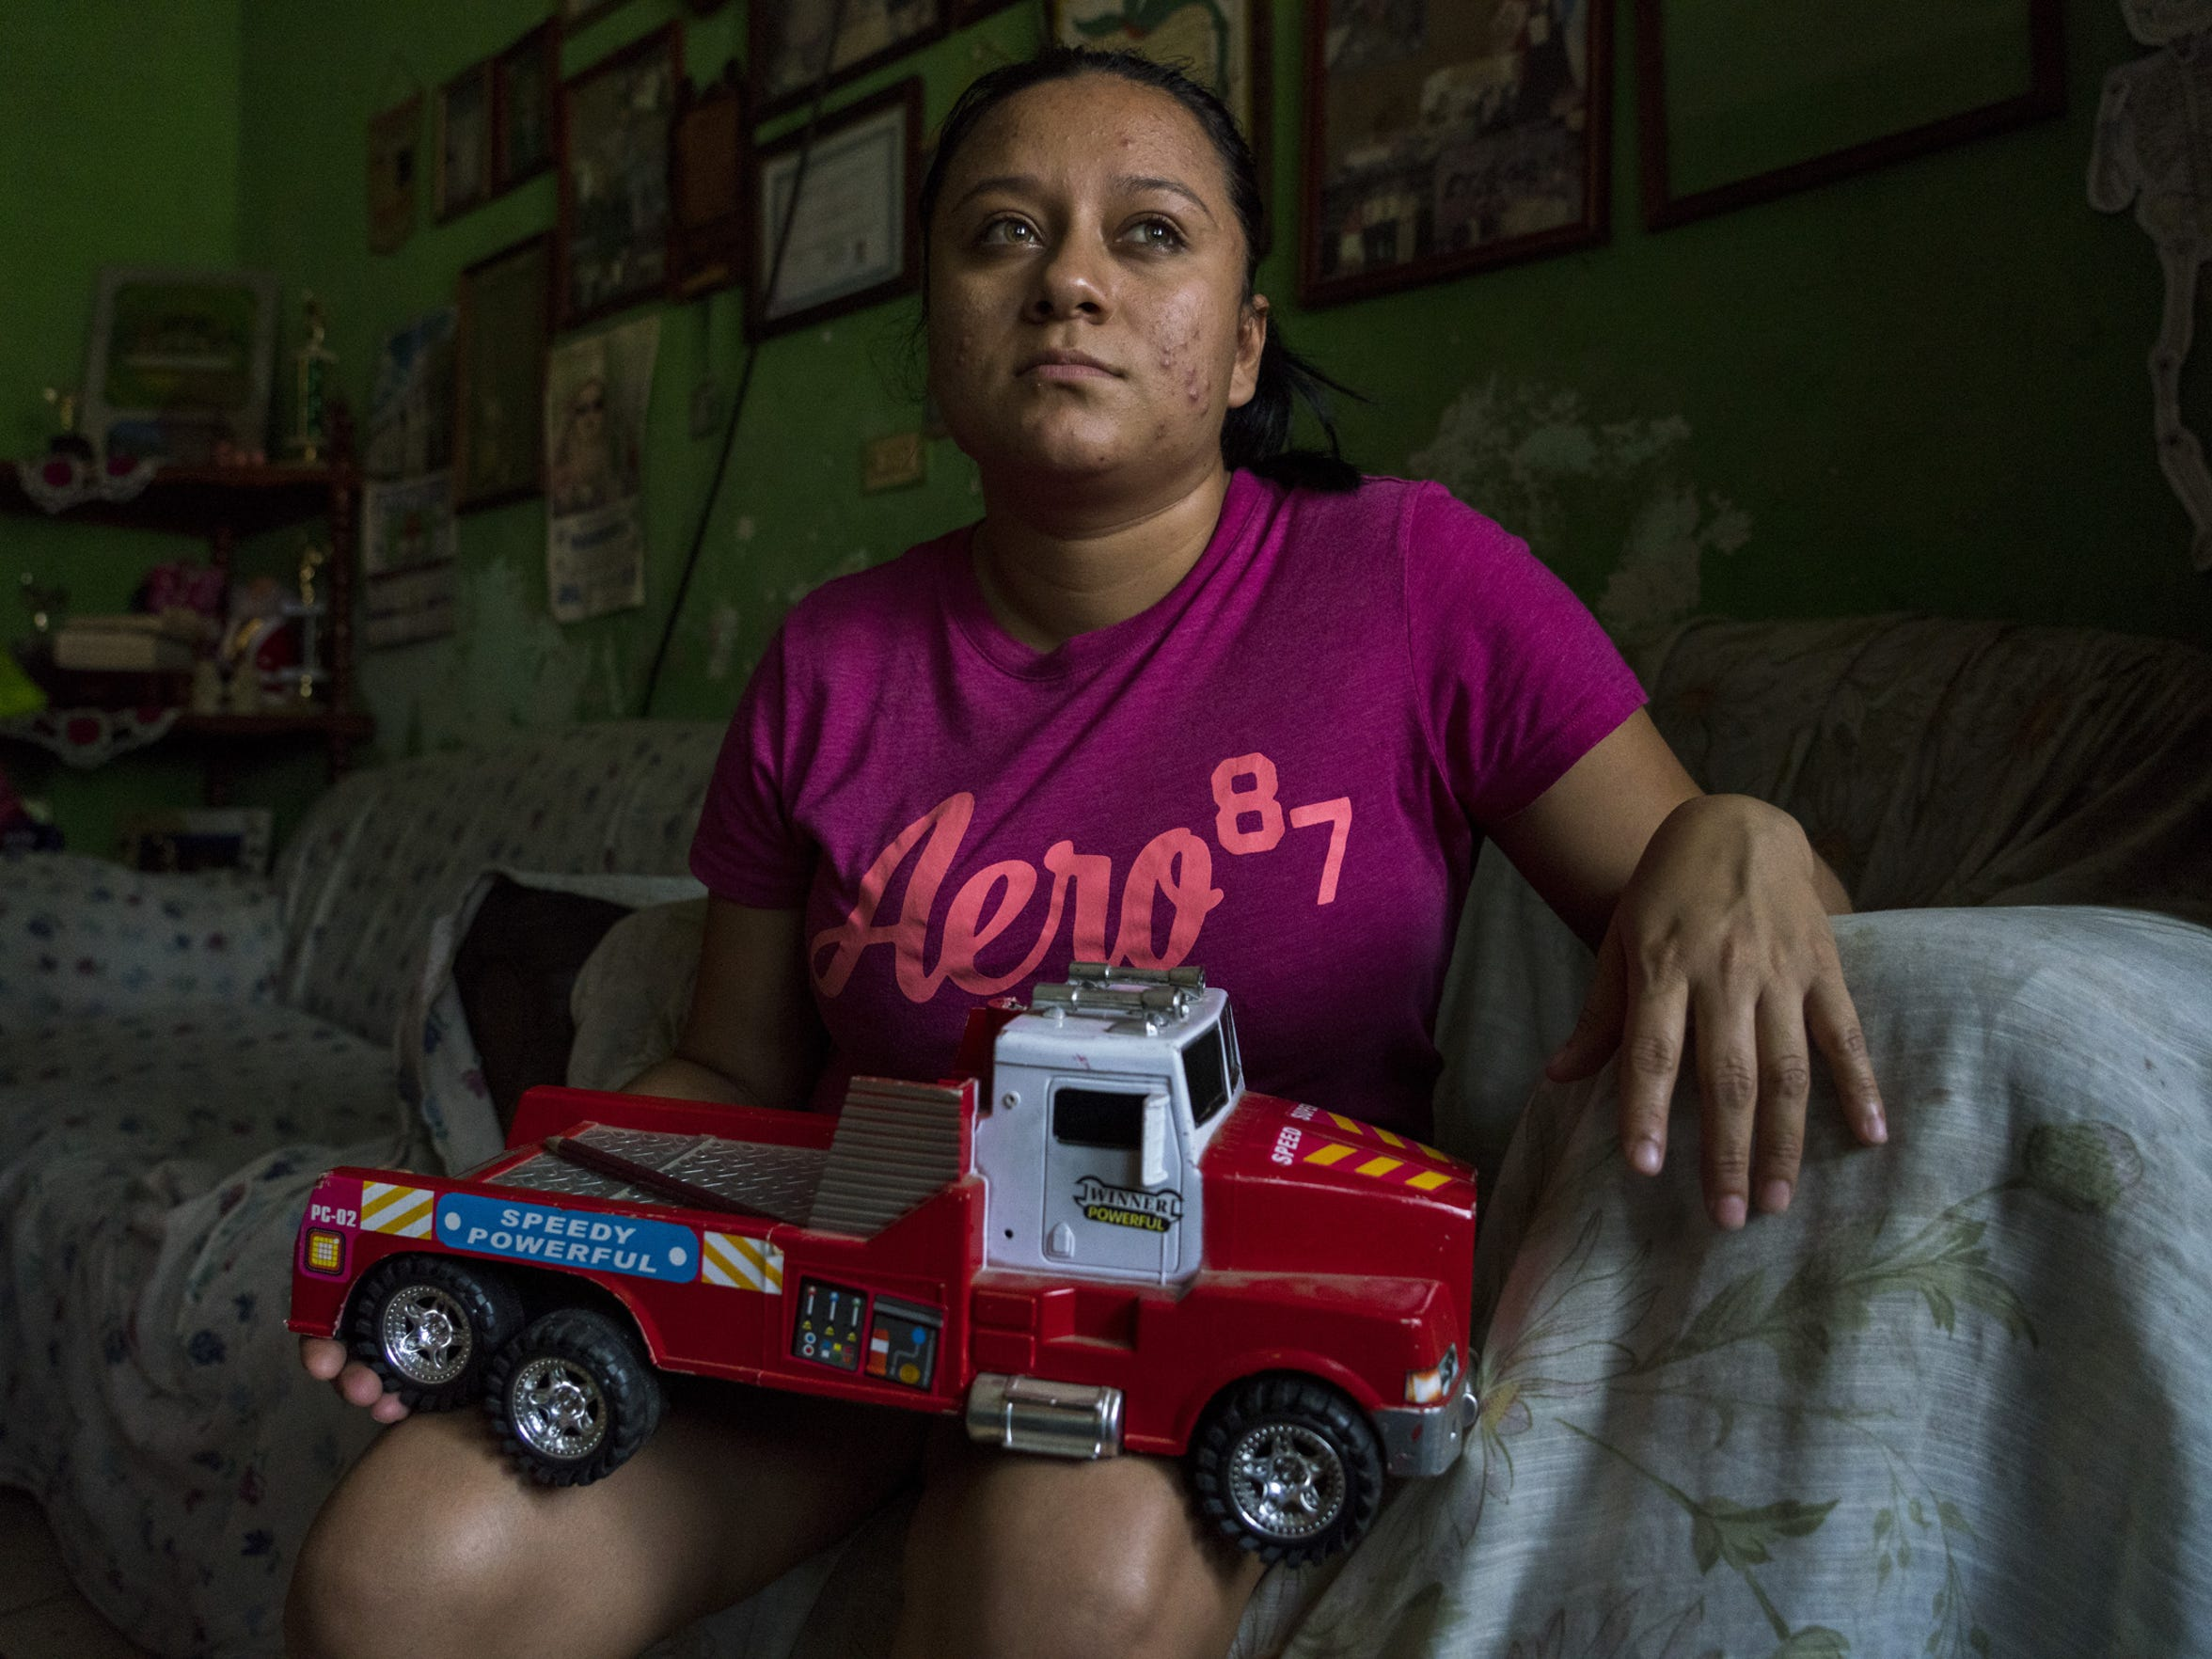 Lourdes Marianela De Leon holds her son Leo's toy at her home in Guatemala. She was deported to Guatemala without 6-year-old Leo, who remains in a New York shelter.